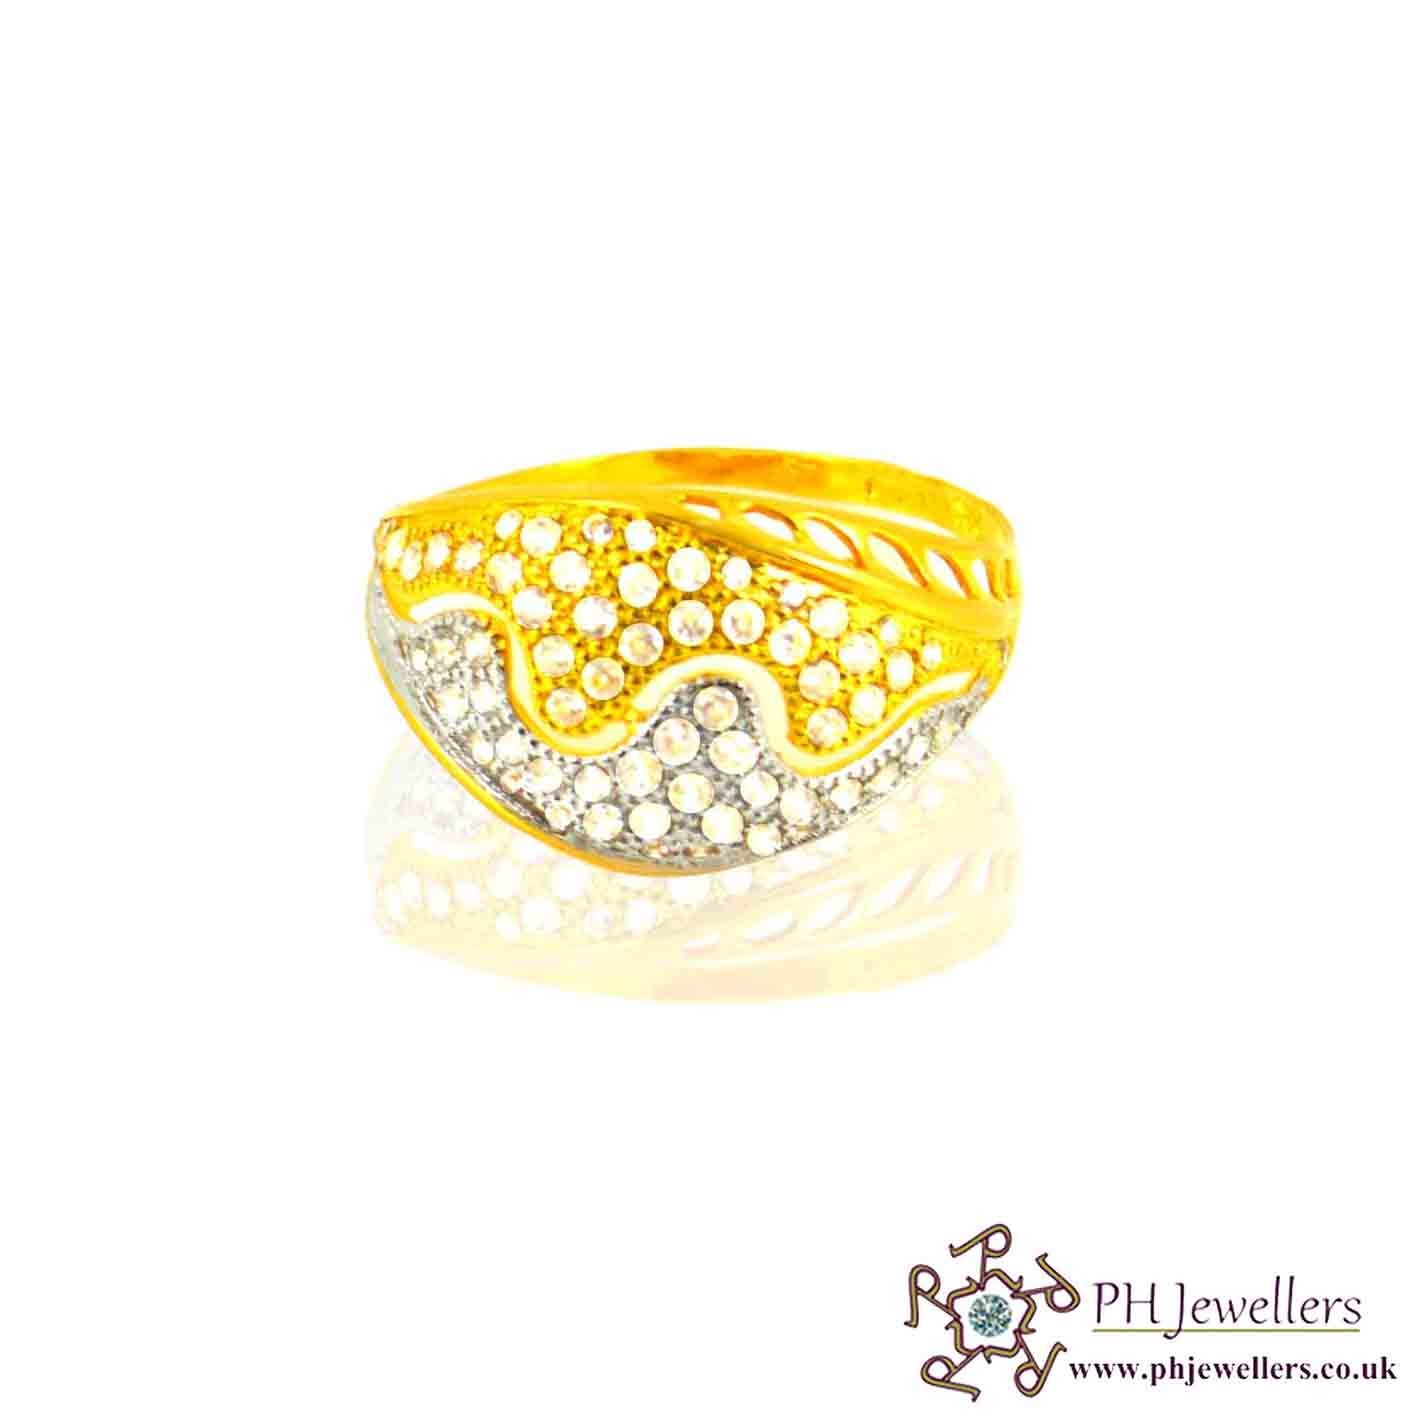 22ct 916 Hallmark Yellow Gold Rhodium Size P Ring CZ SR24